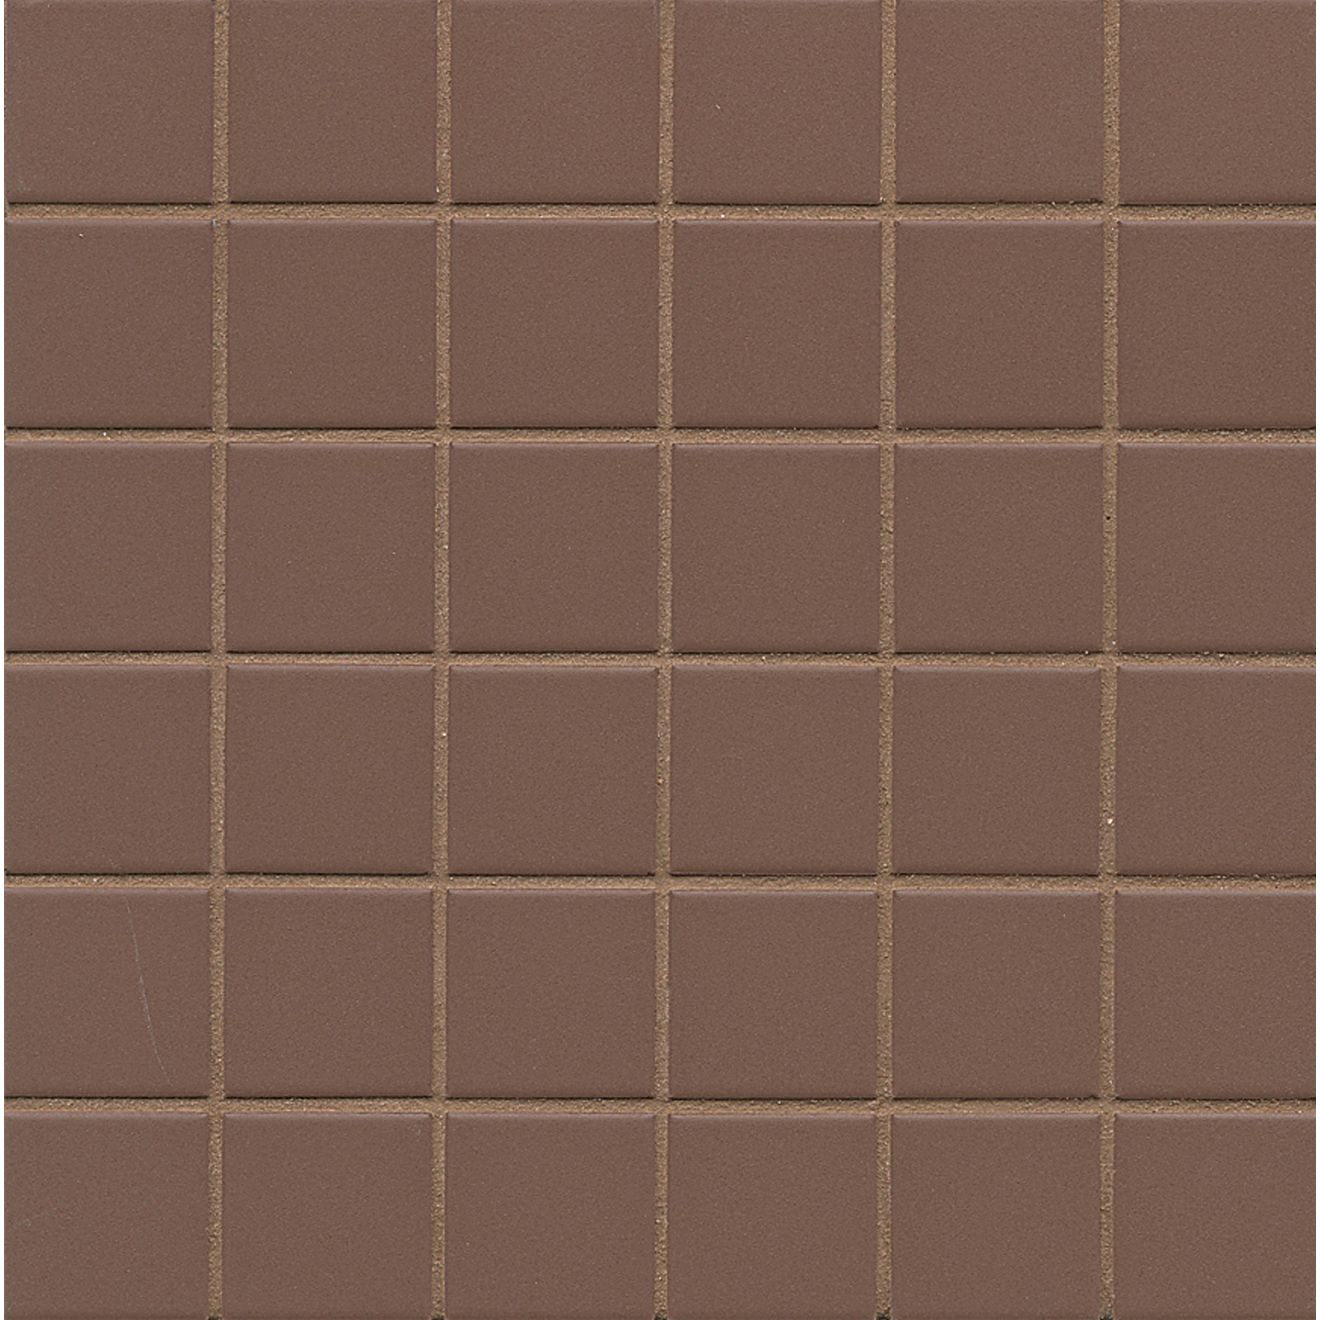 Elements Floor & Wall Mosaic in Mocha